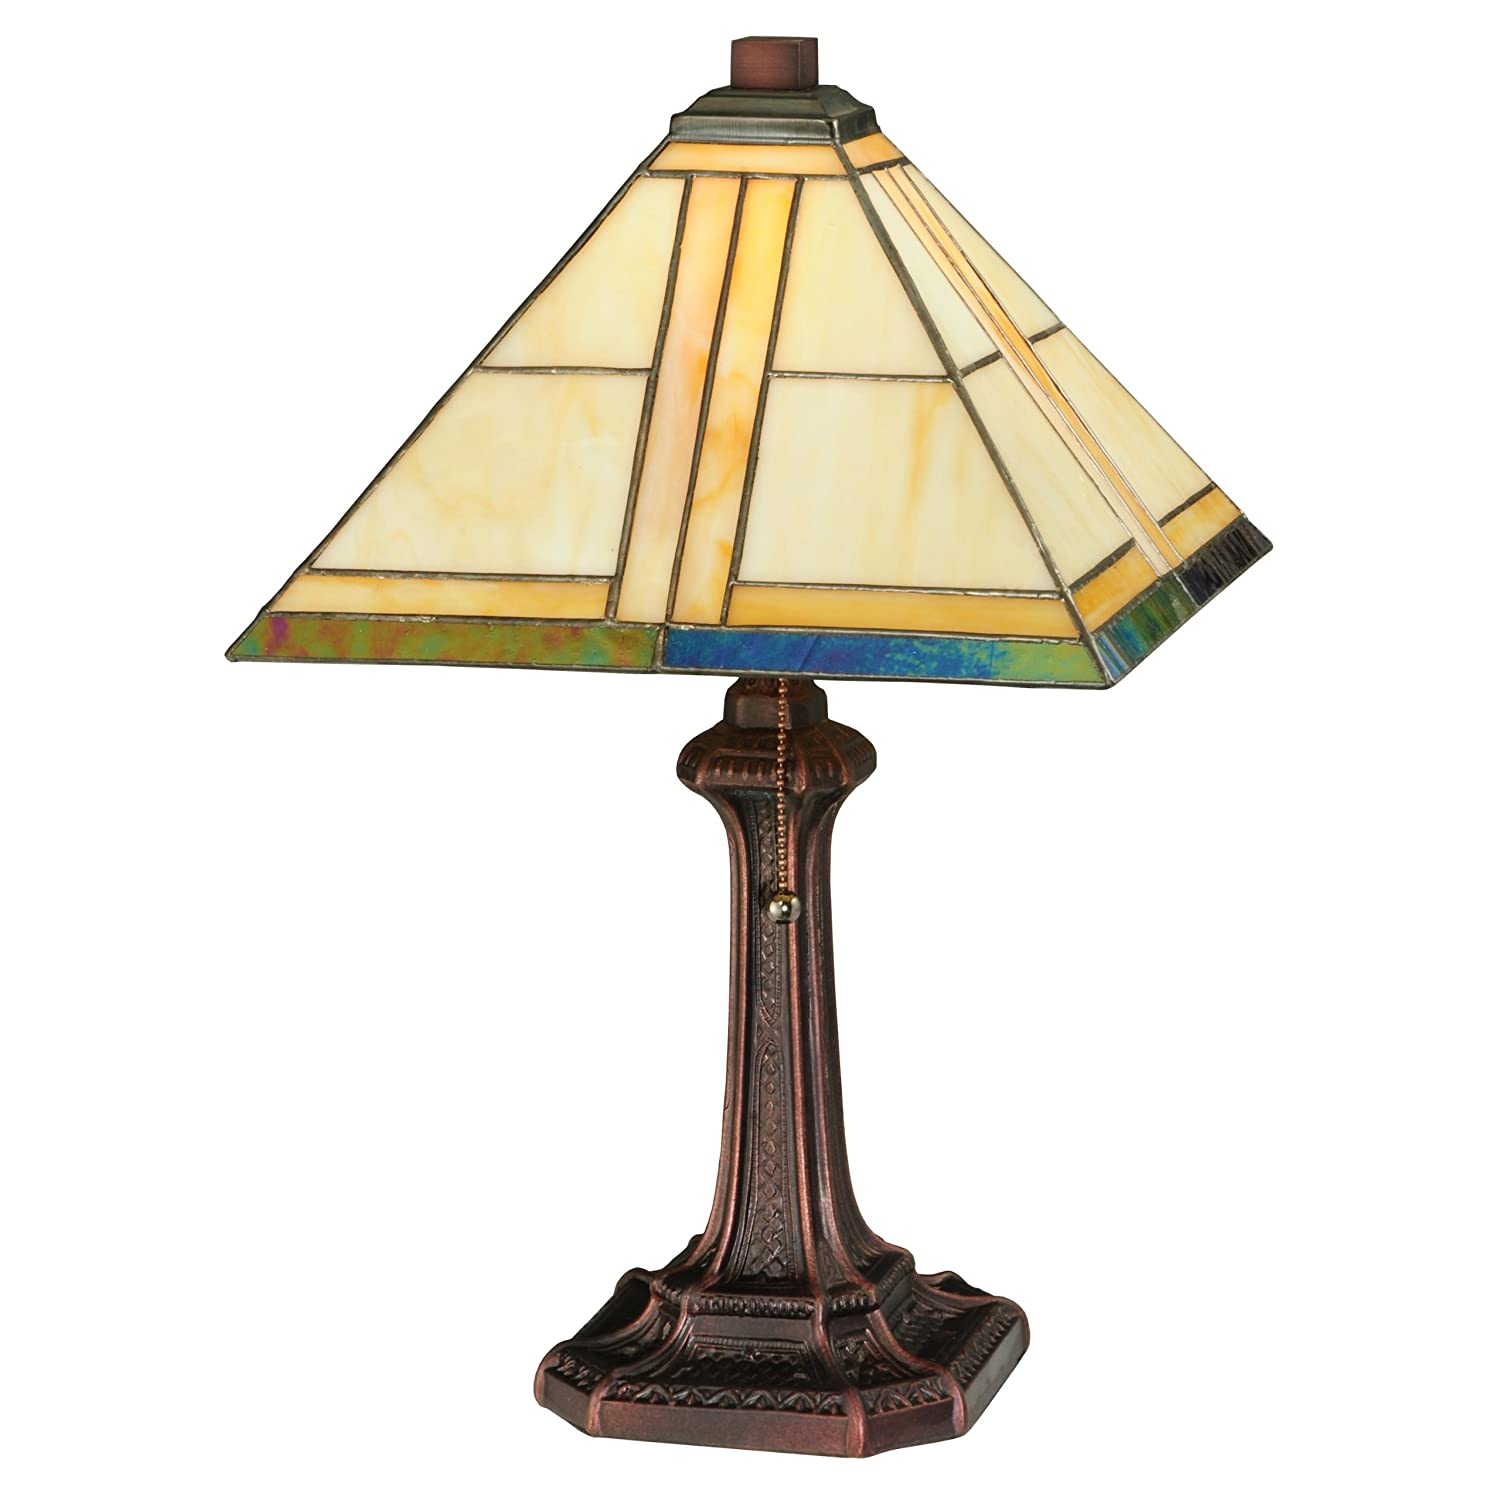 19 Quot H Trellis Table Lamp On Sale Pyramex Highlander